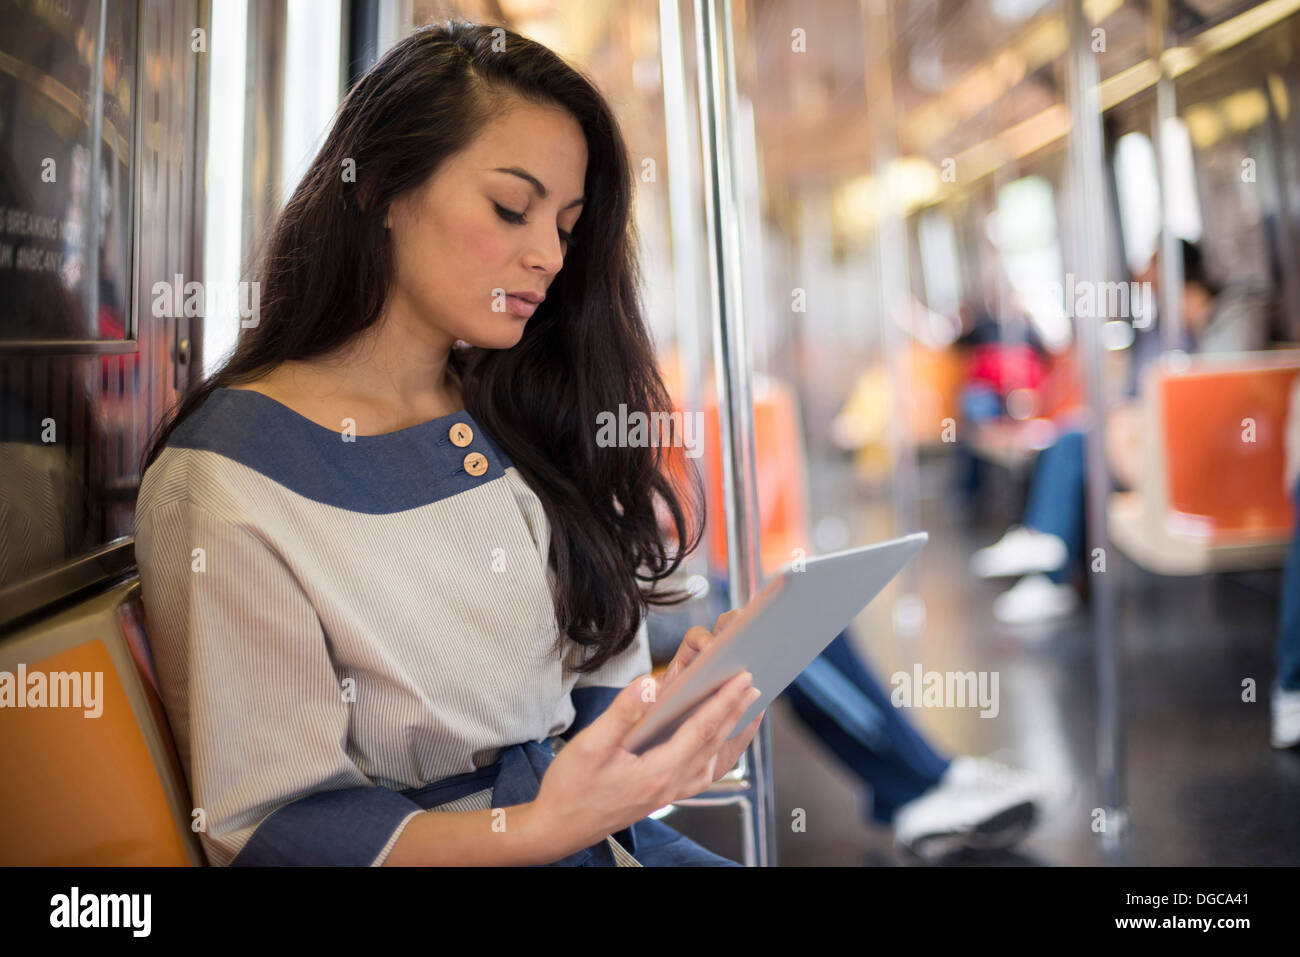 Mid adult women using digital tablet on subway, New York - Stock Image